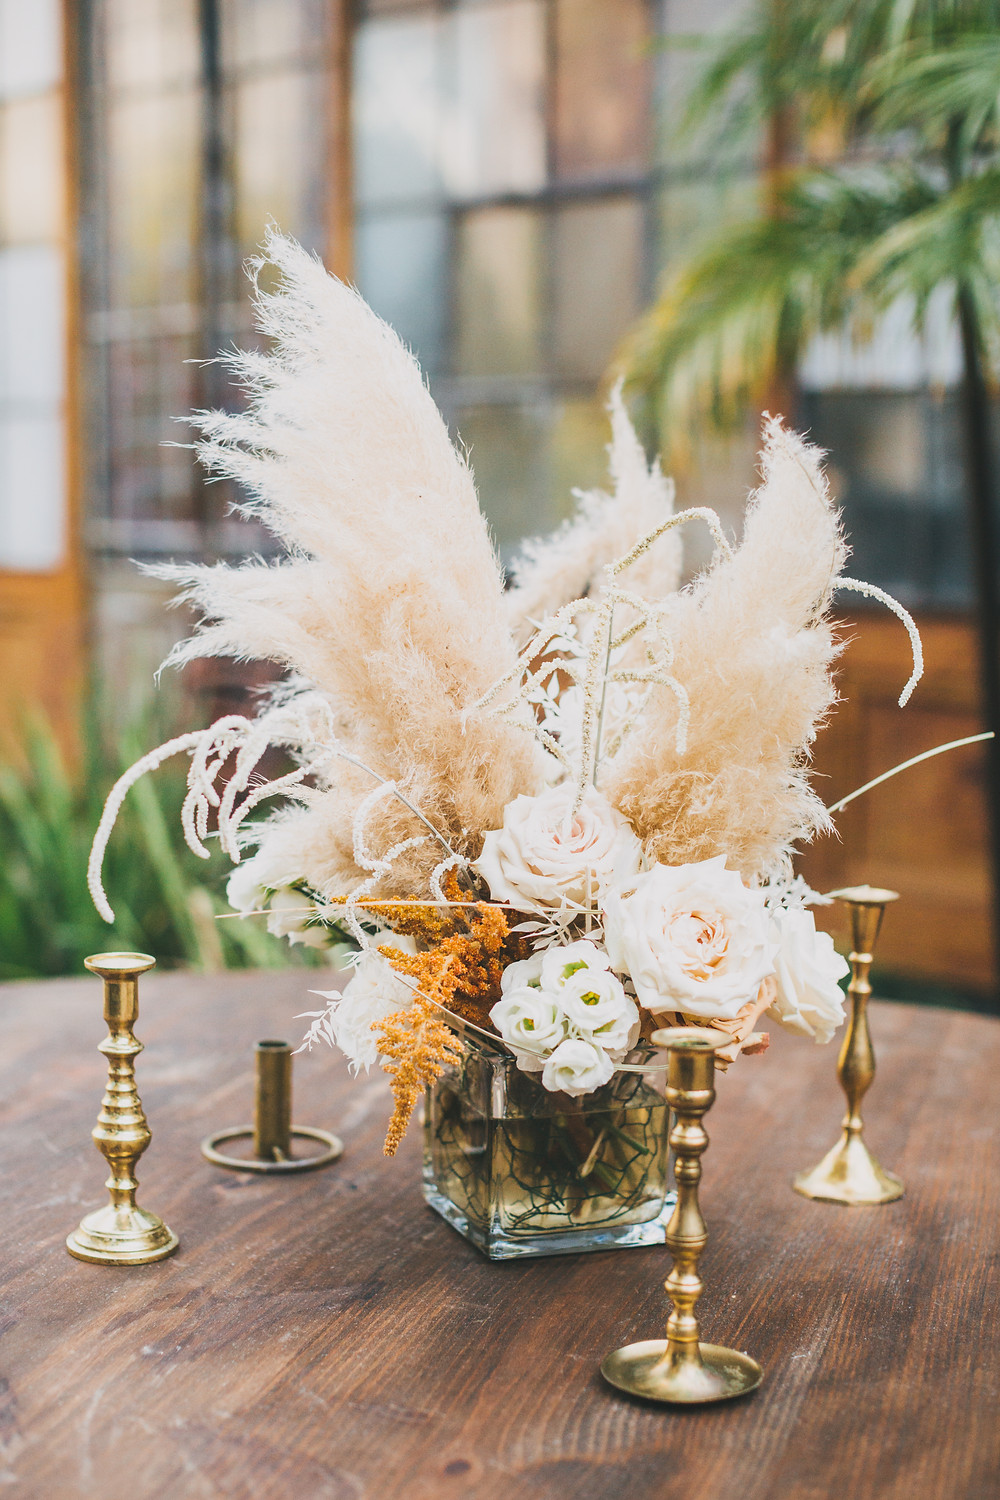 Lovegood Wedding & Event Rentals, New Orleans Vintage Rental Company for Corporate, Parties, and Weddings | Lounge Furniture in NOLA, Specialty Rentals, Decor across the Southeast, Boho Reception with Farm Tables